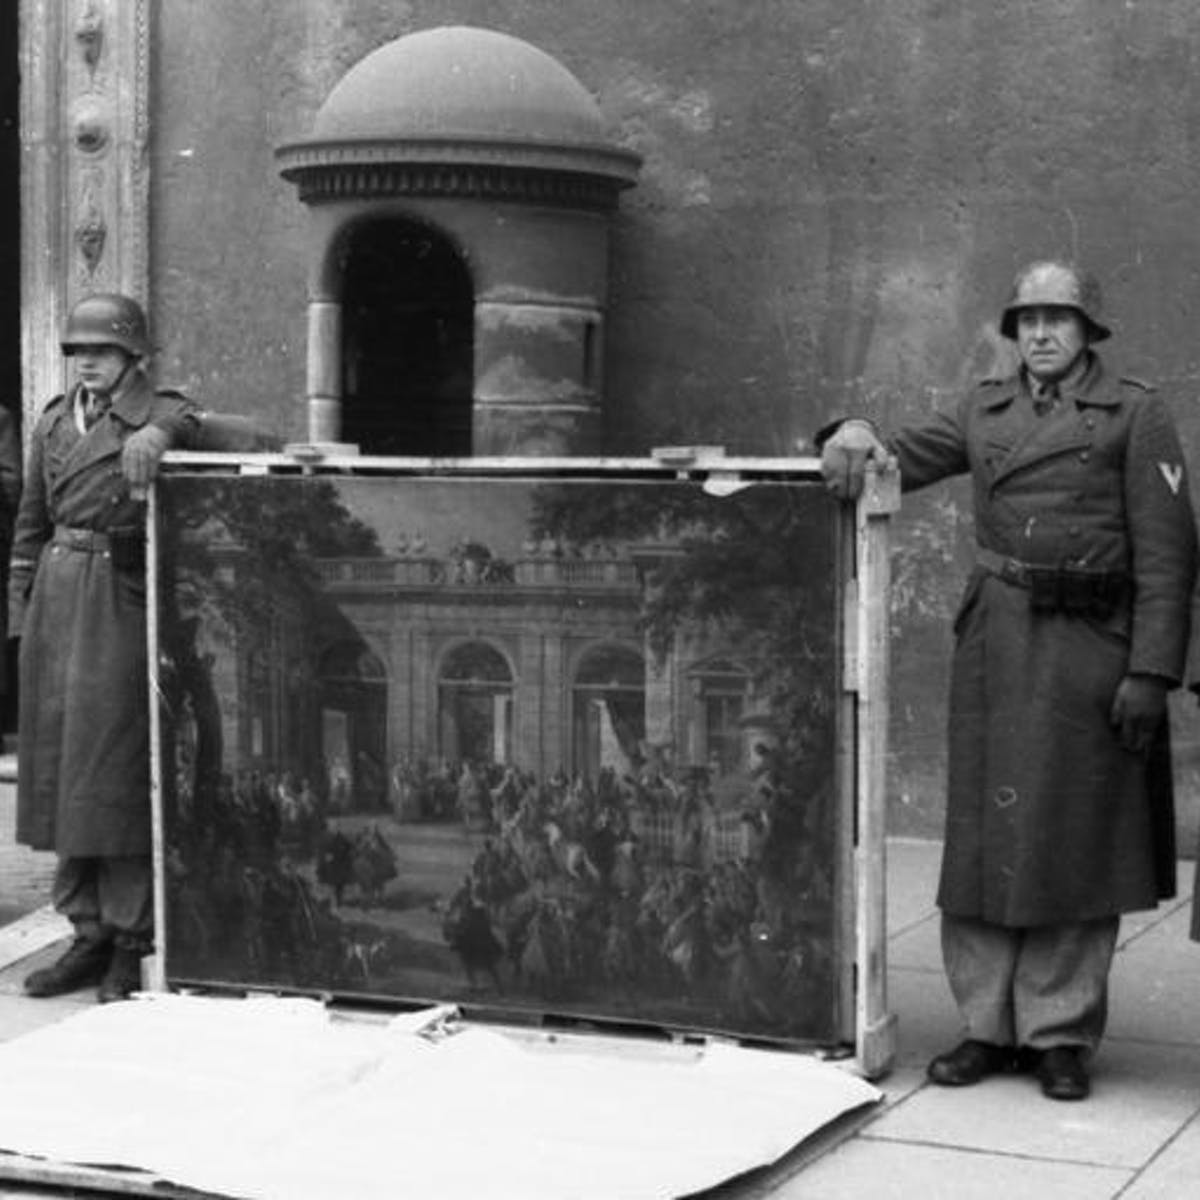 Why aren't American museums doing more to return Nazi-looted